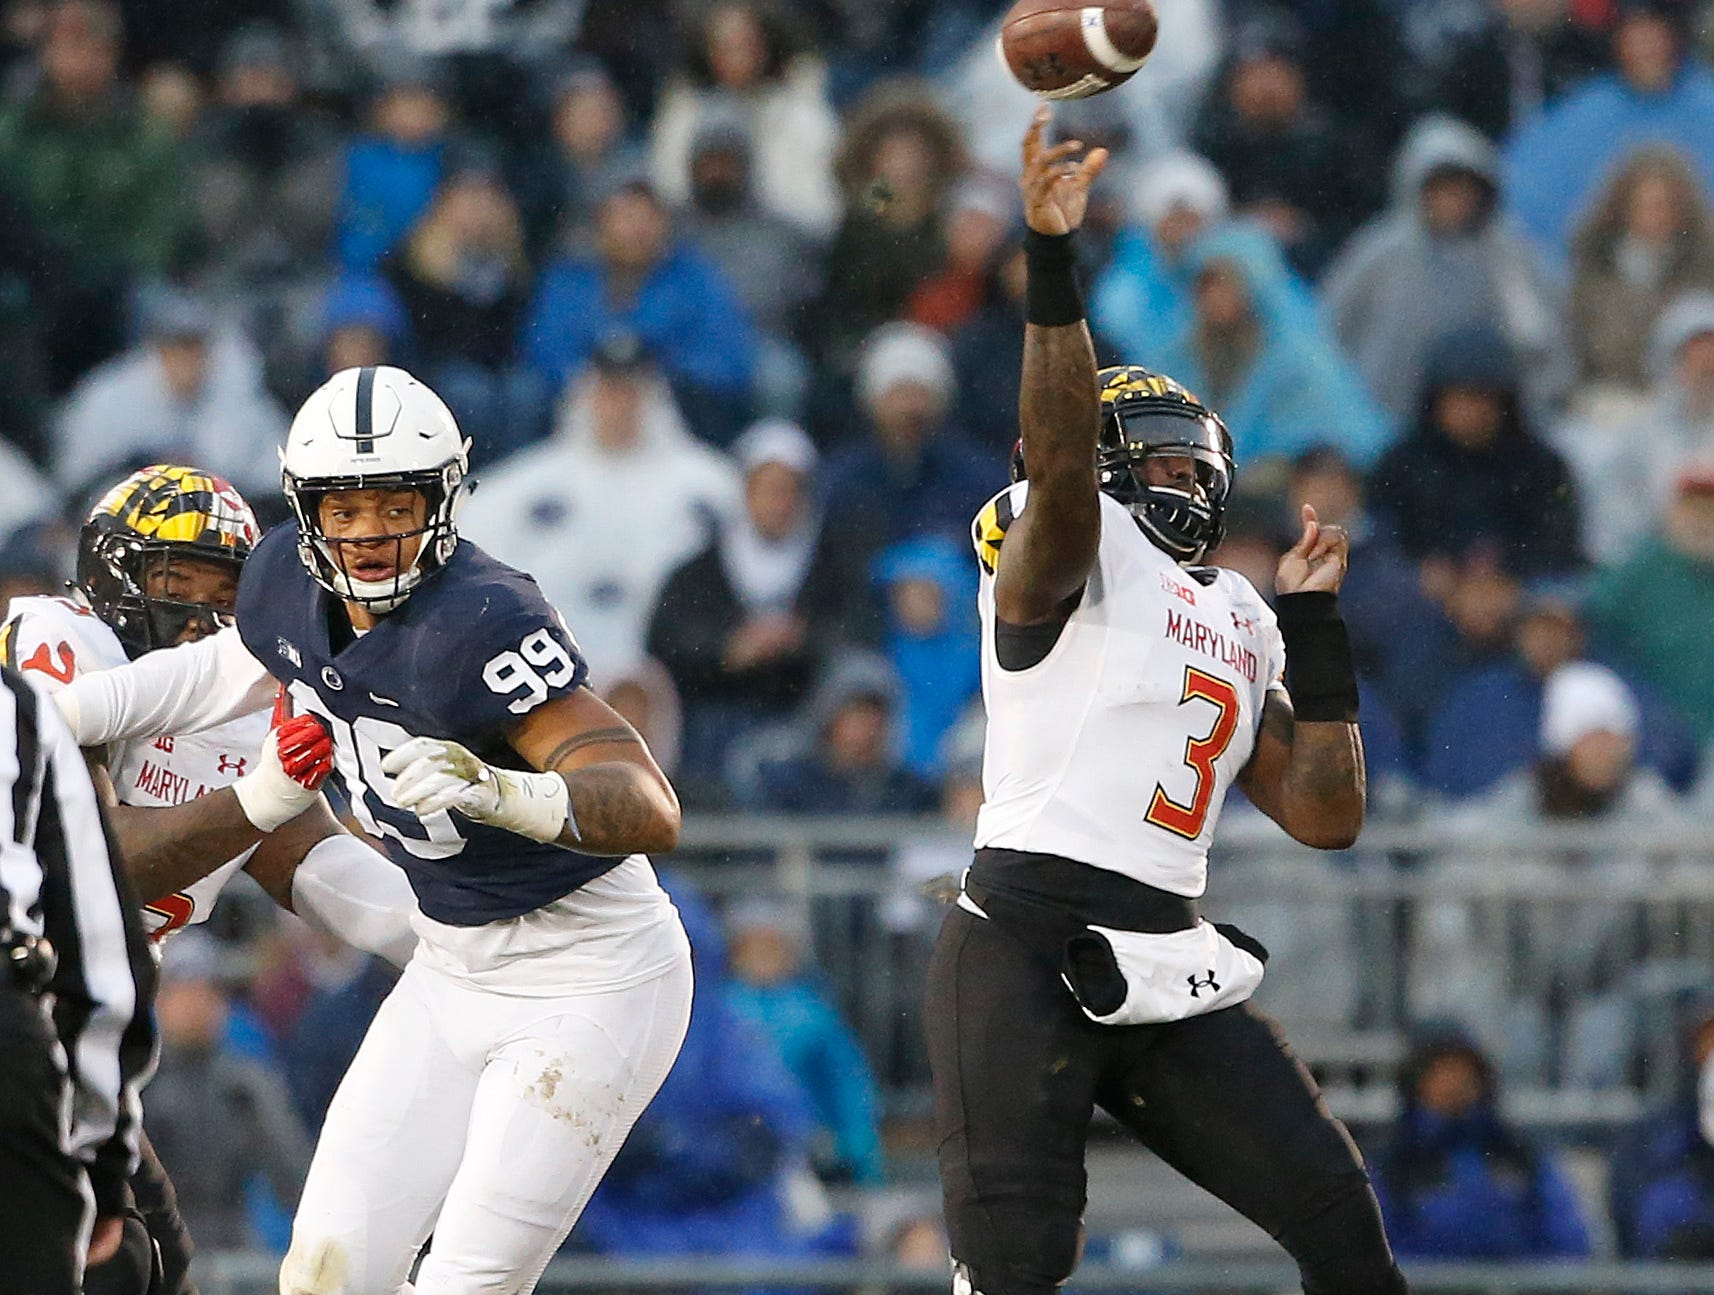 Maryland quarterback Tyrrell Pigrome (3) throws a pass against Penn State during the first half of an NCAA college football game in State College, Pa., Saturday, Nov. 24, 2018.